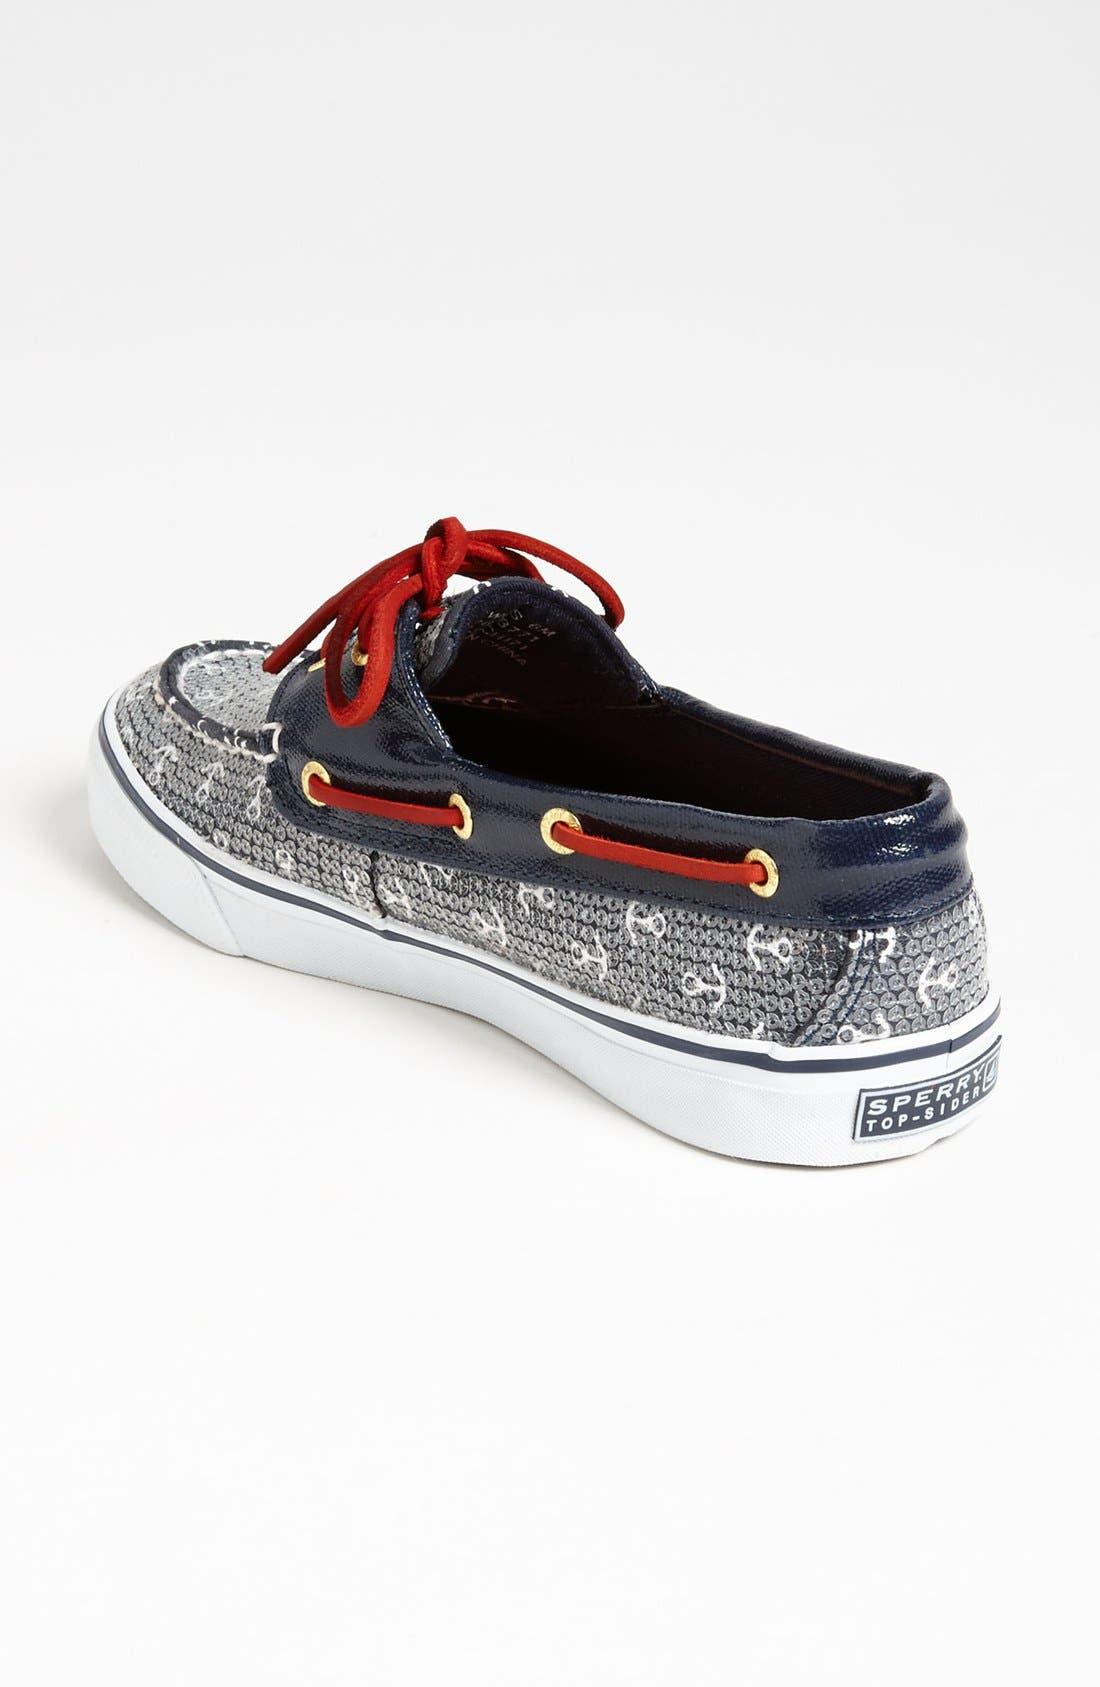 Top-Sider<sup>®</sup> 'Bahama' Sequined Boat Shoe,                             Alternate thumbnail 109, color,